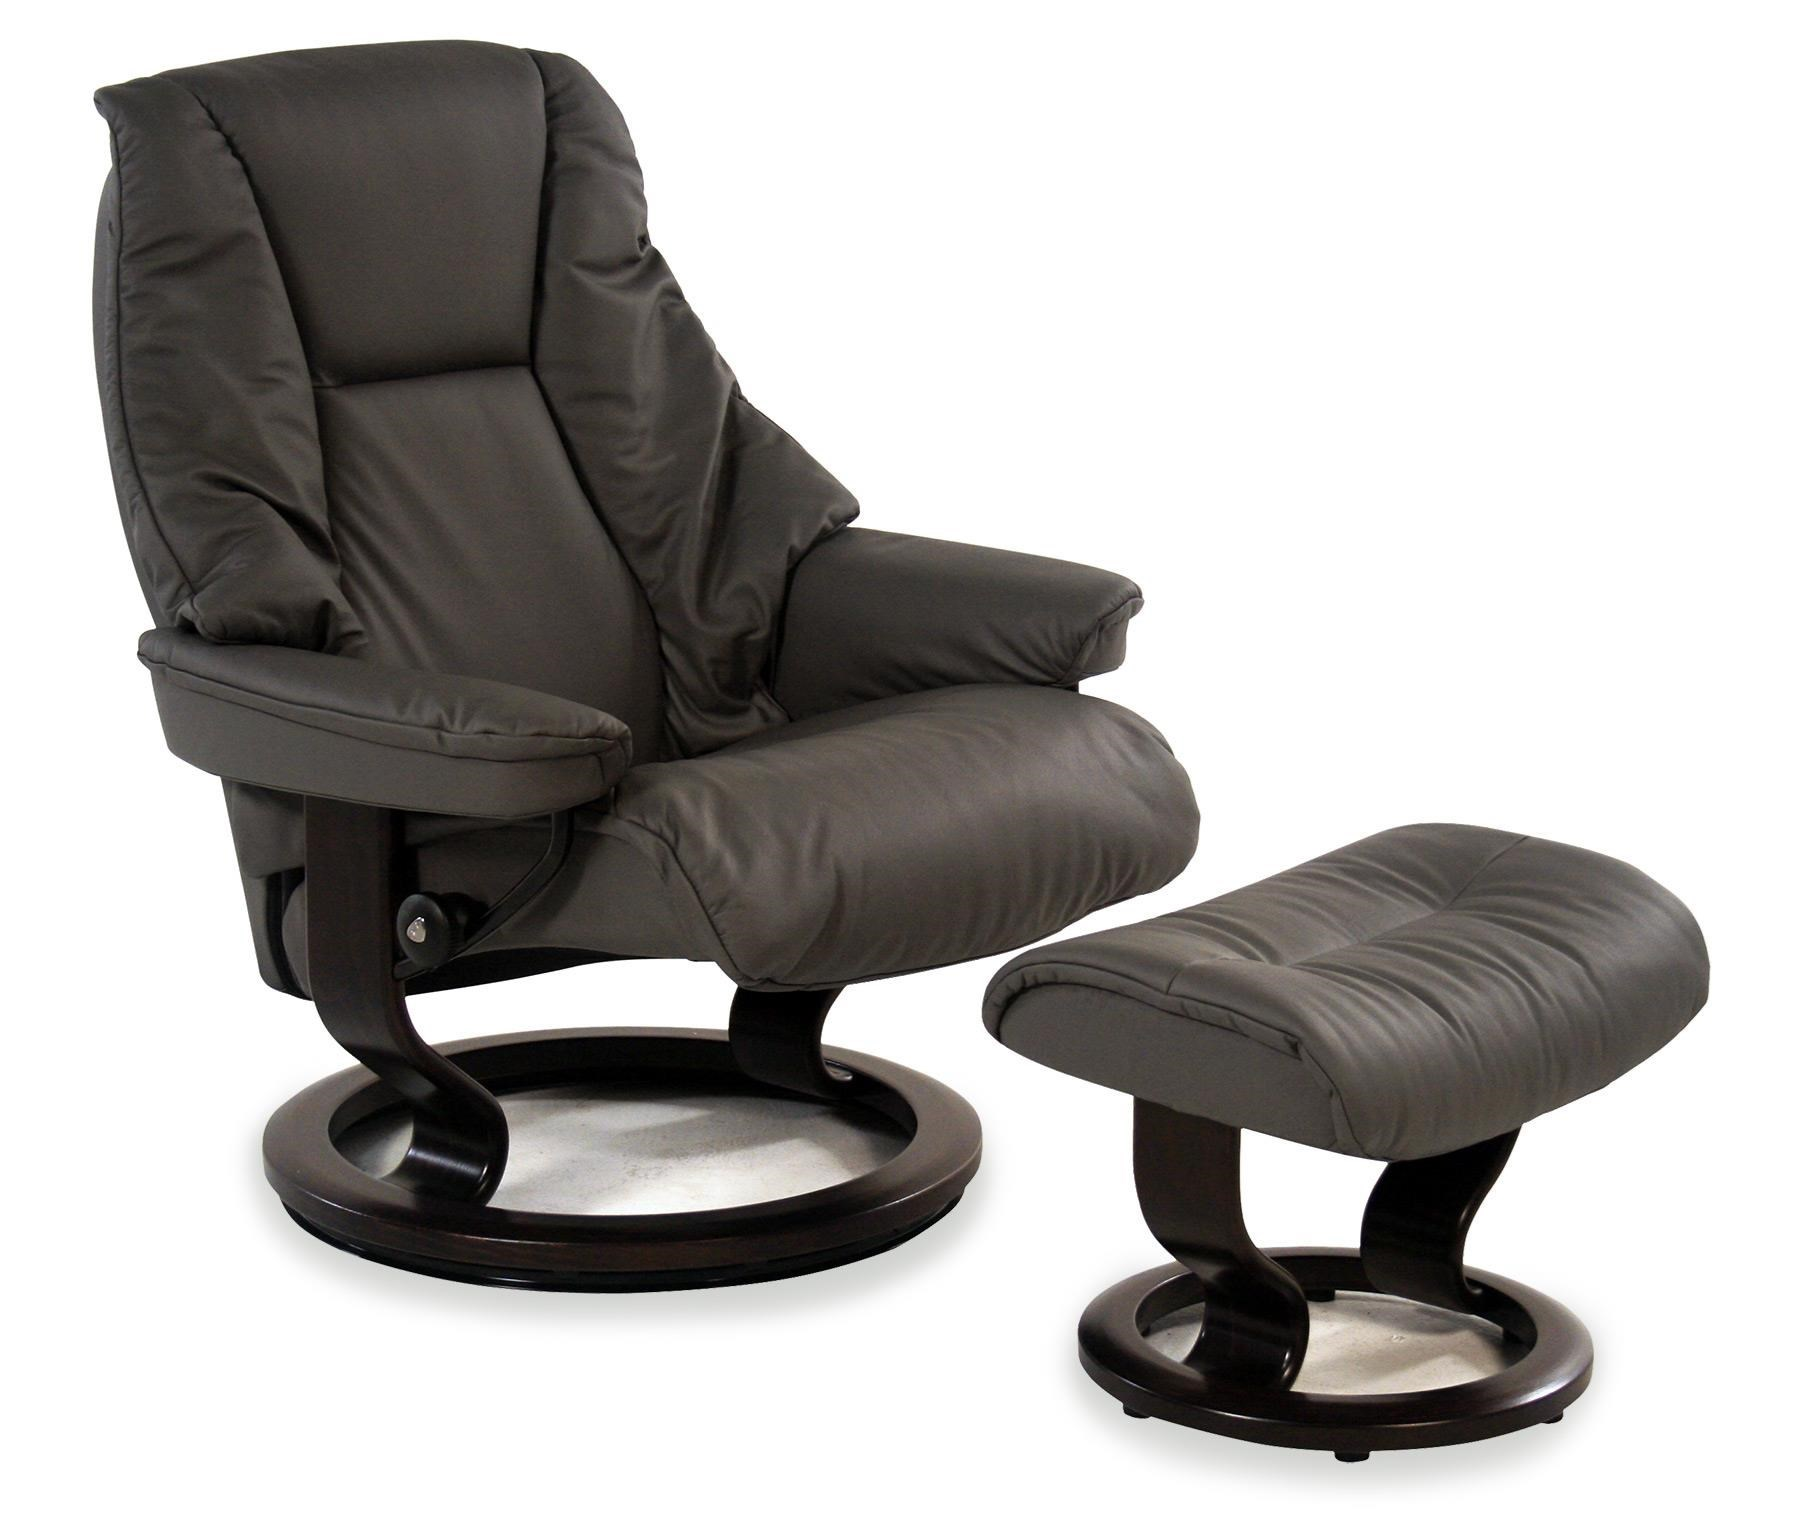 Stresless Live Large Reclining Chair Ottoman Paloma Metal Grey W Classic Base By Stressless By Ekornes At Rotmans